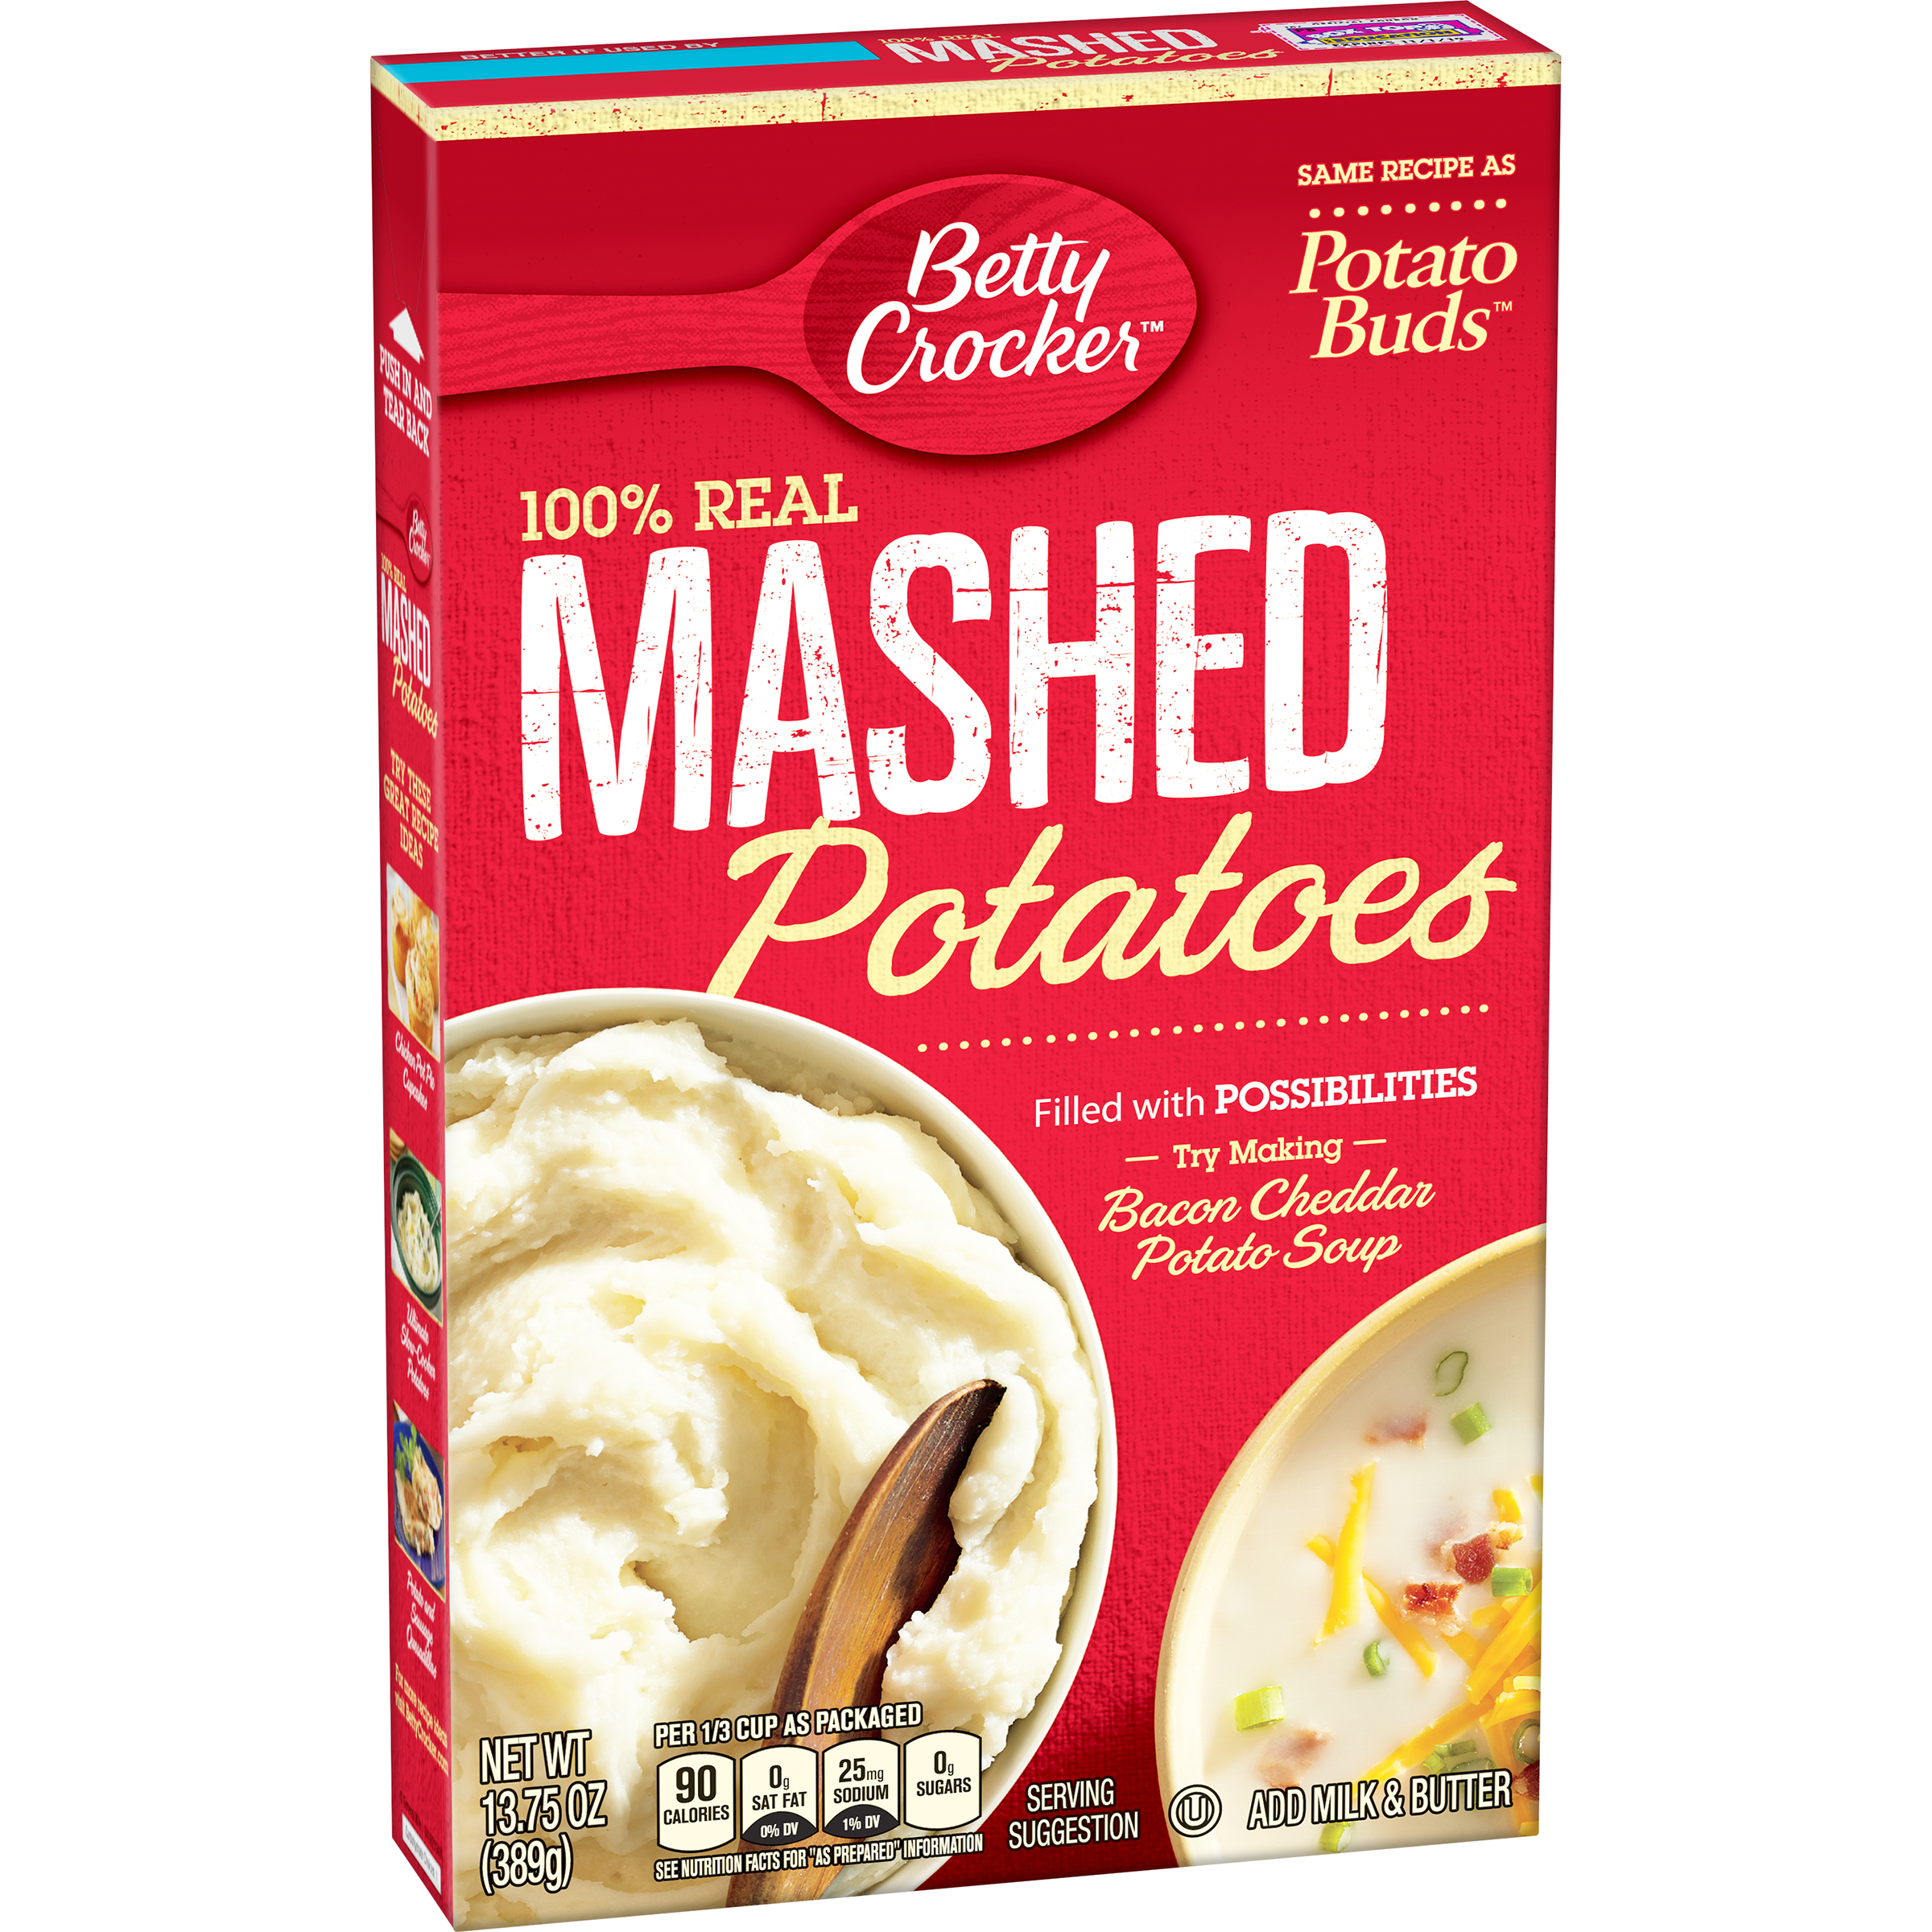 Betty Crocker® 100% Real Mashed Potatoes 13.75 oz. Box